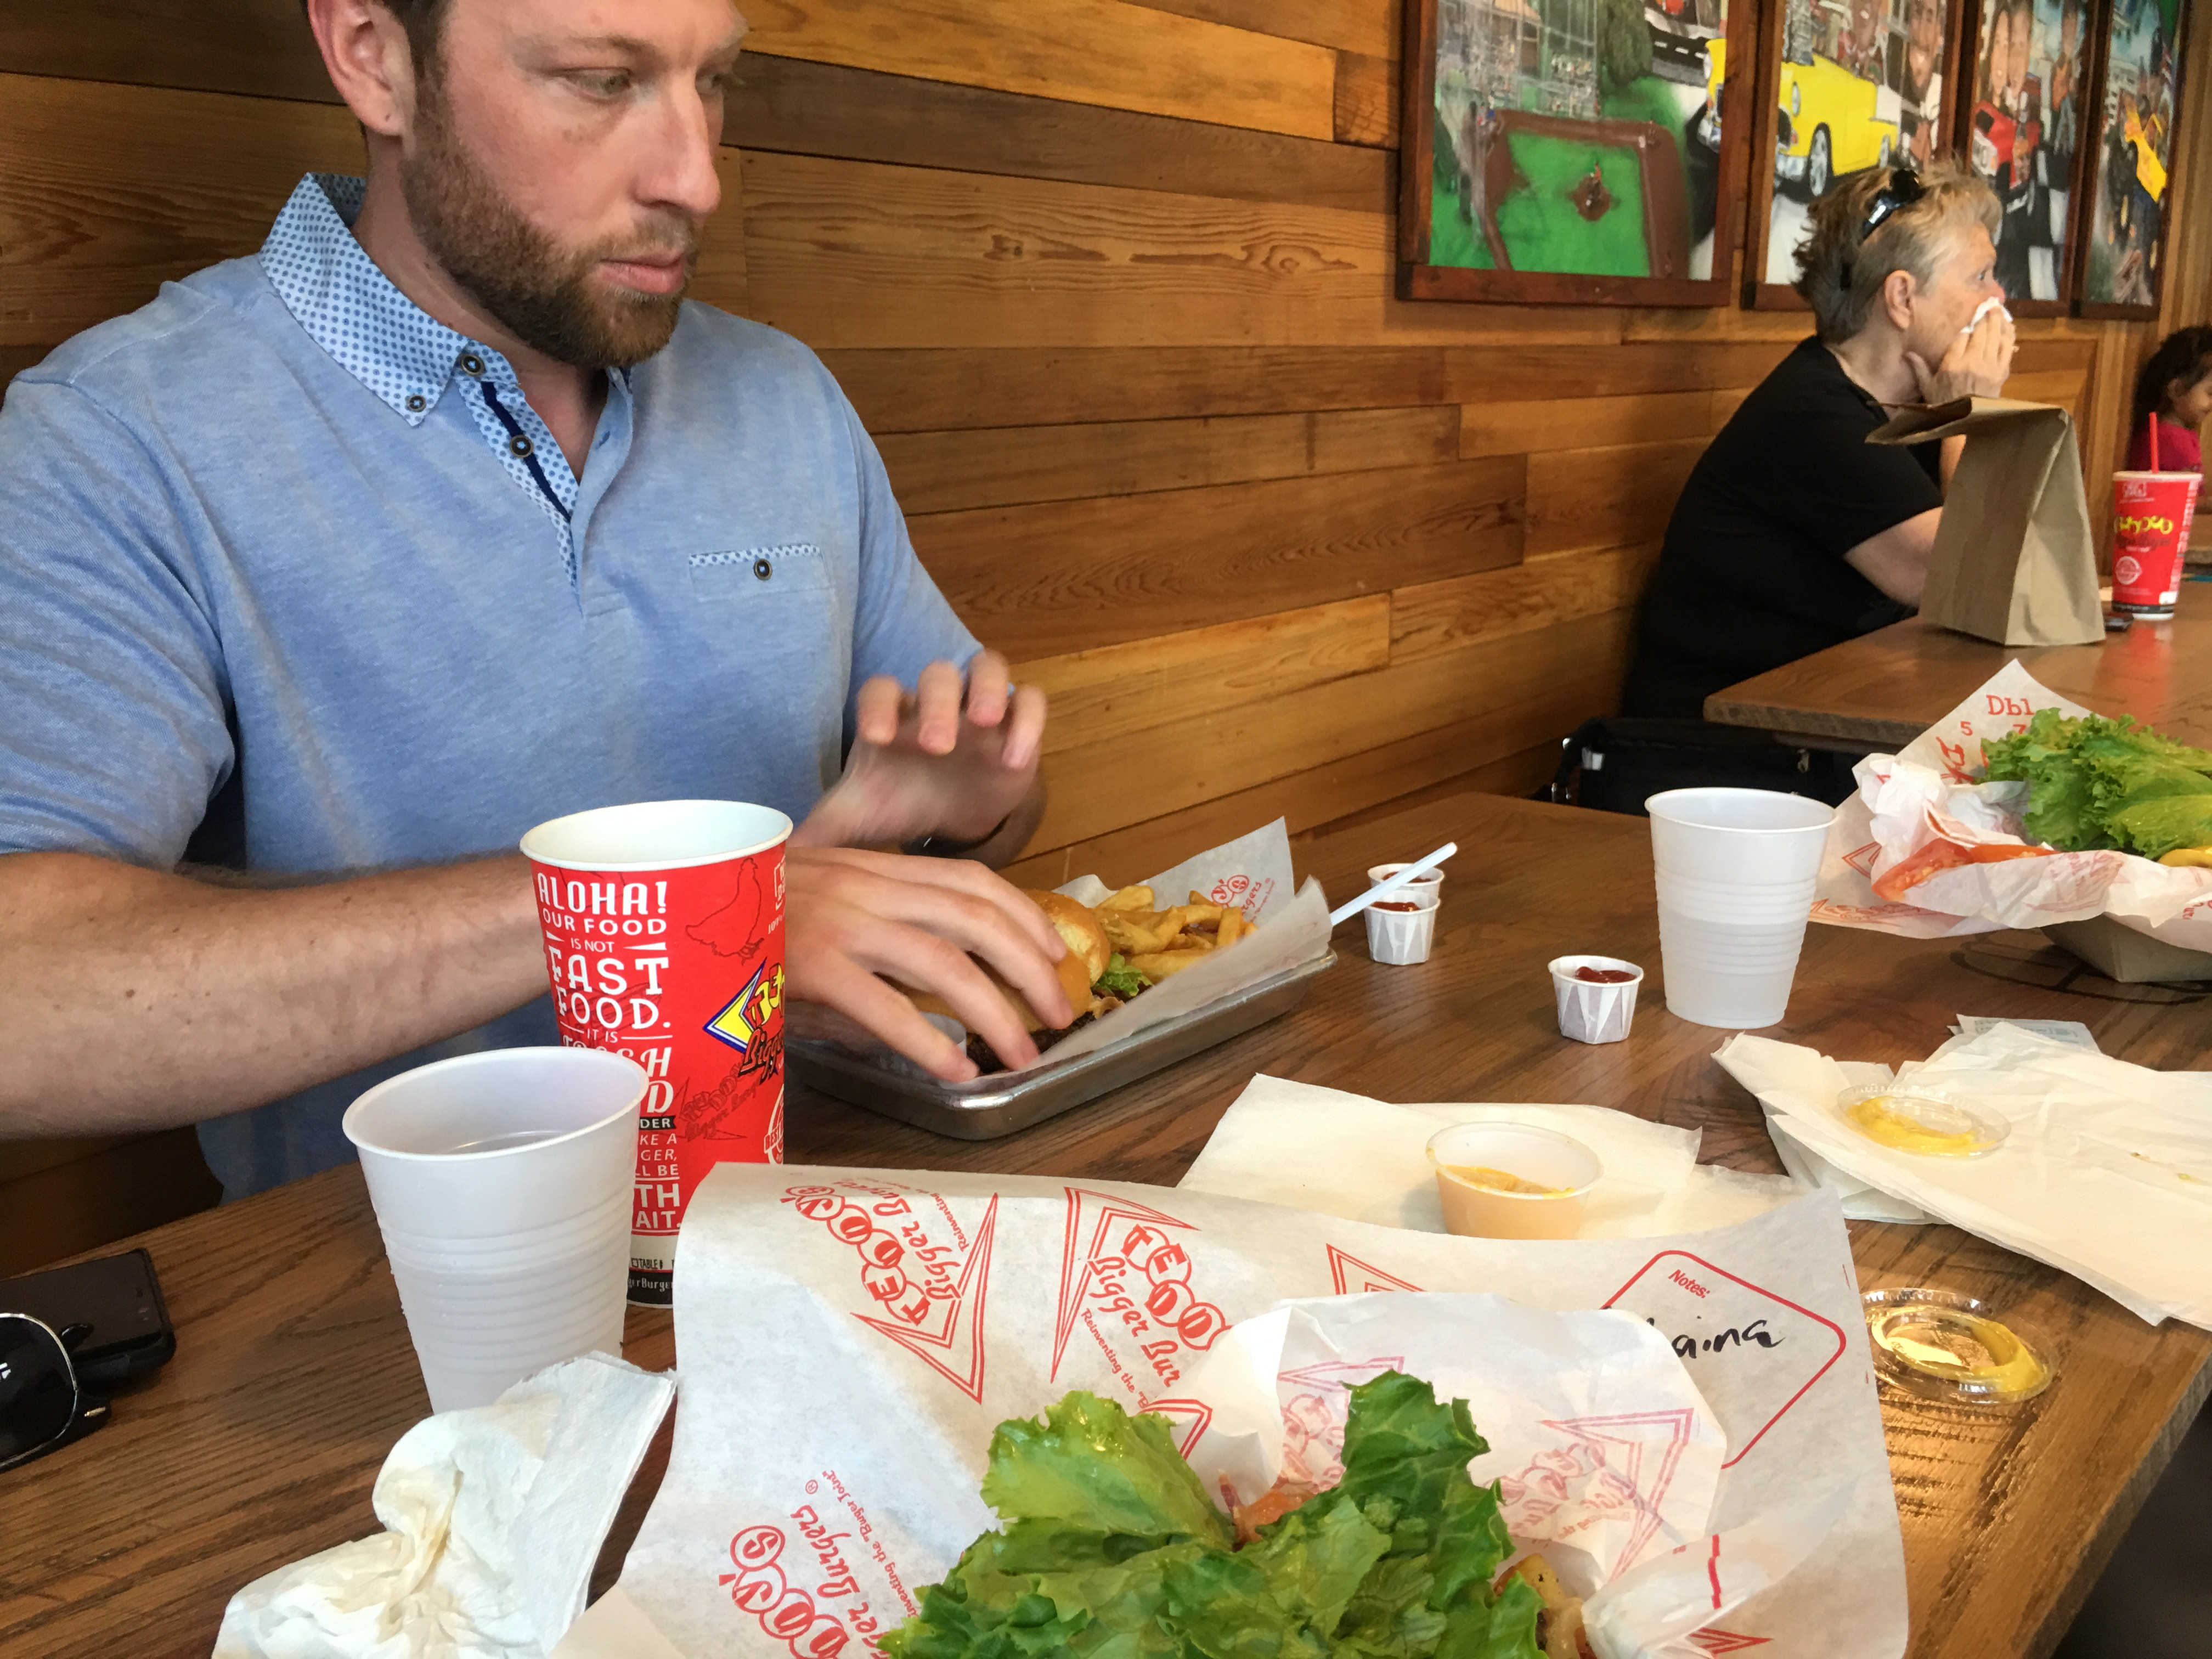 Teddy's Burgers - Getting after it